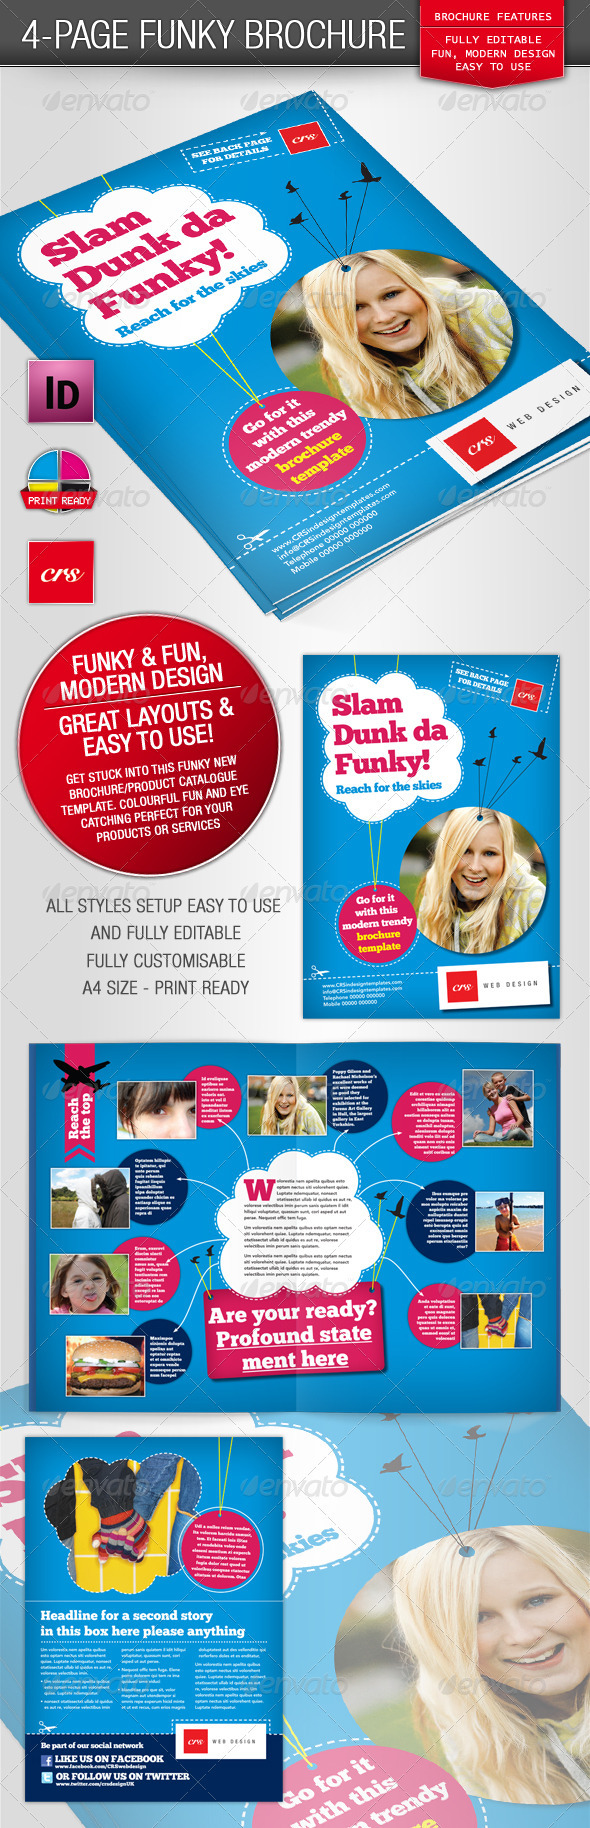 GraphicRiver Funky Brochure Template 1616883